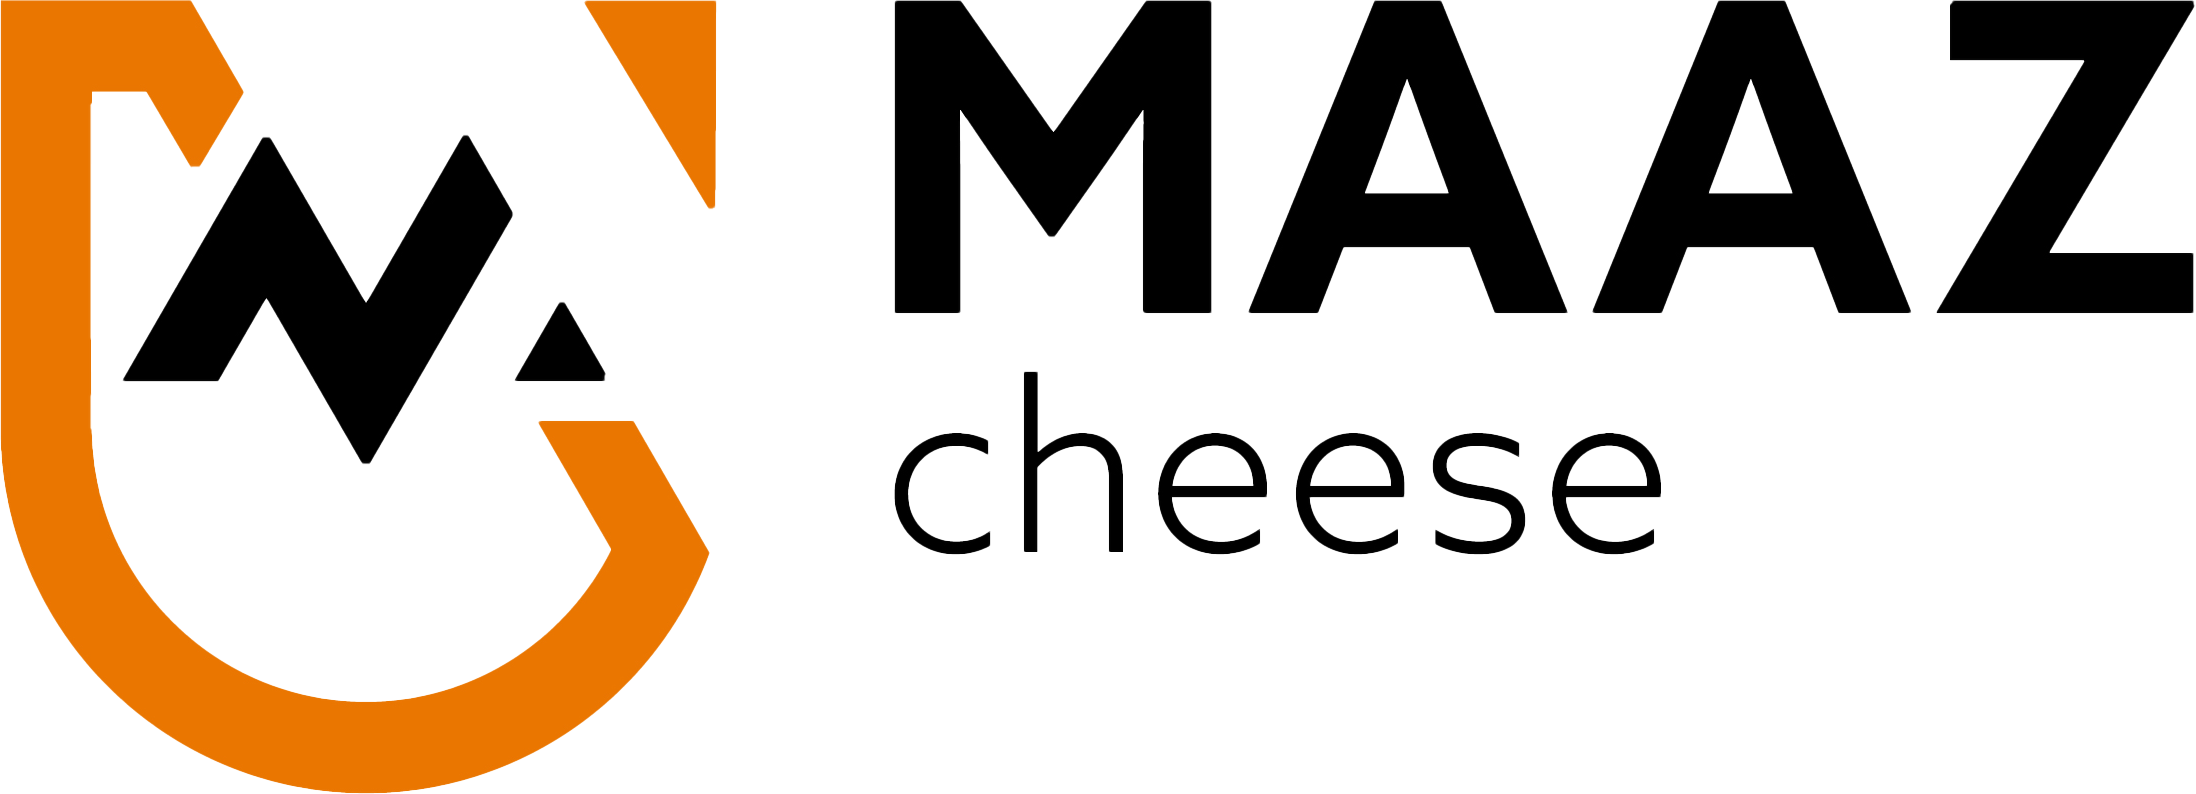 Maaz cheese